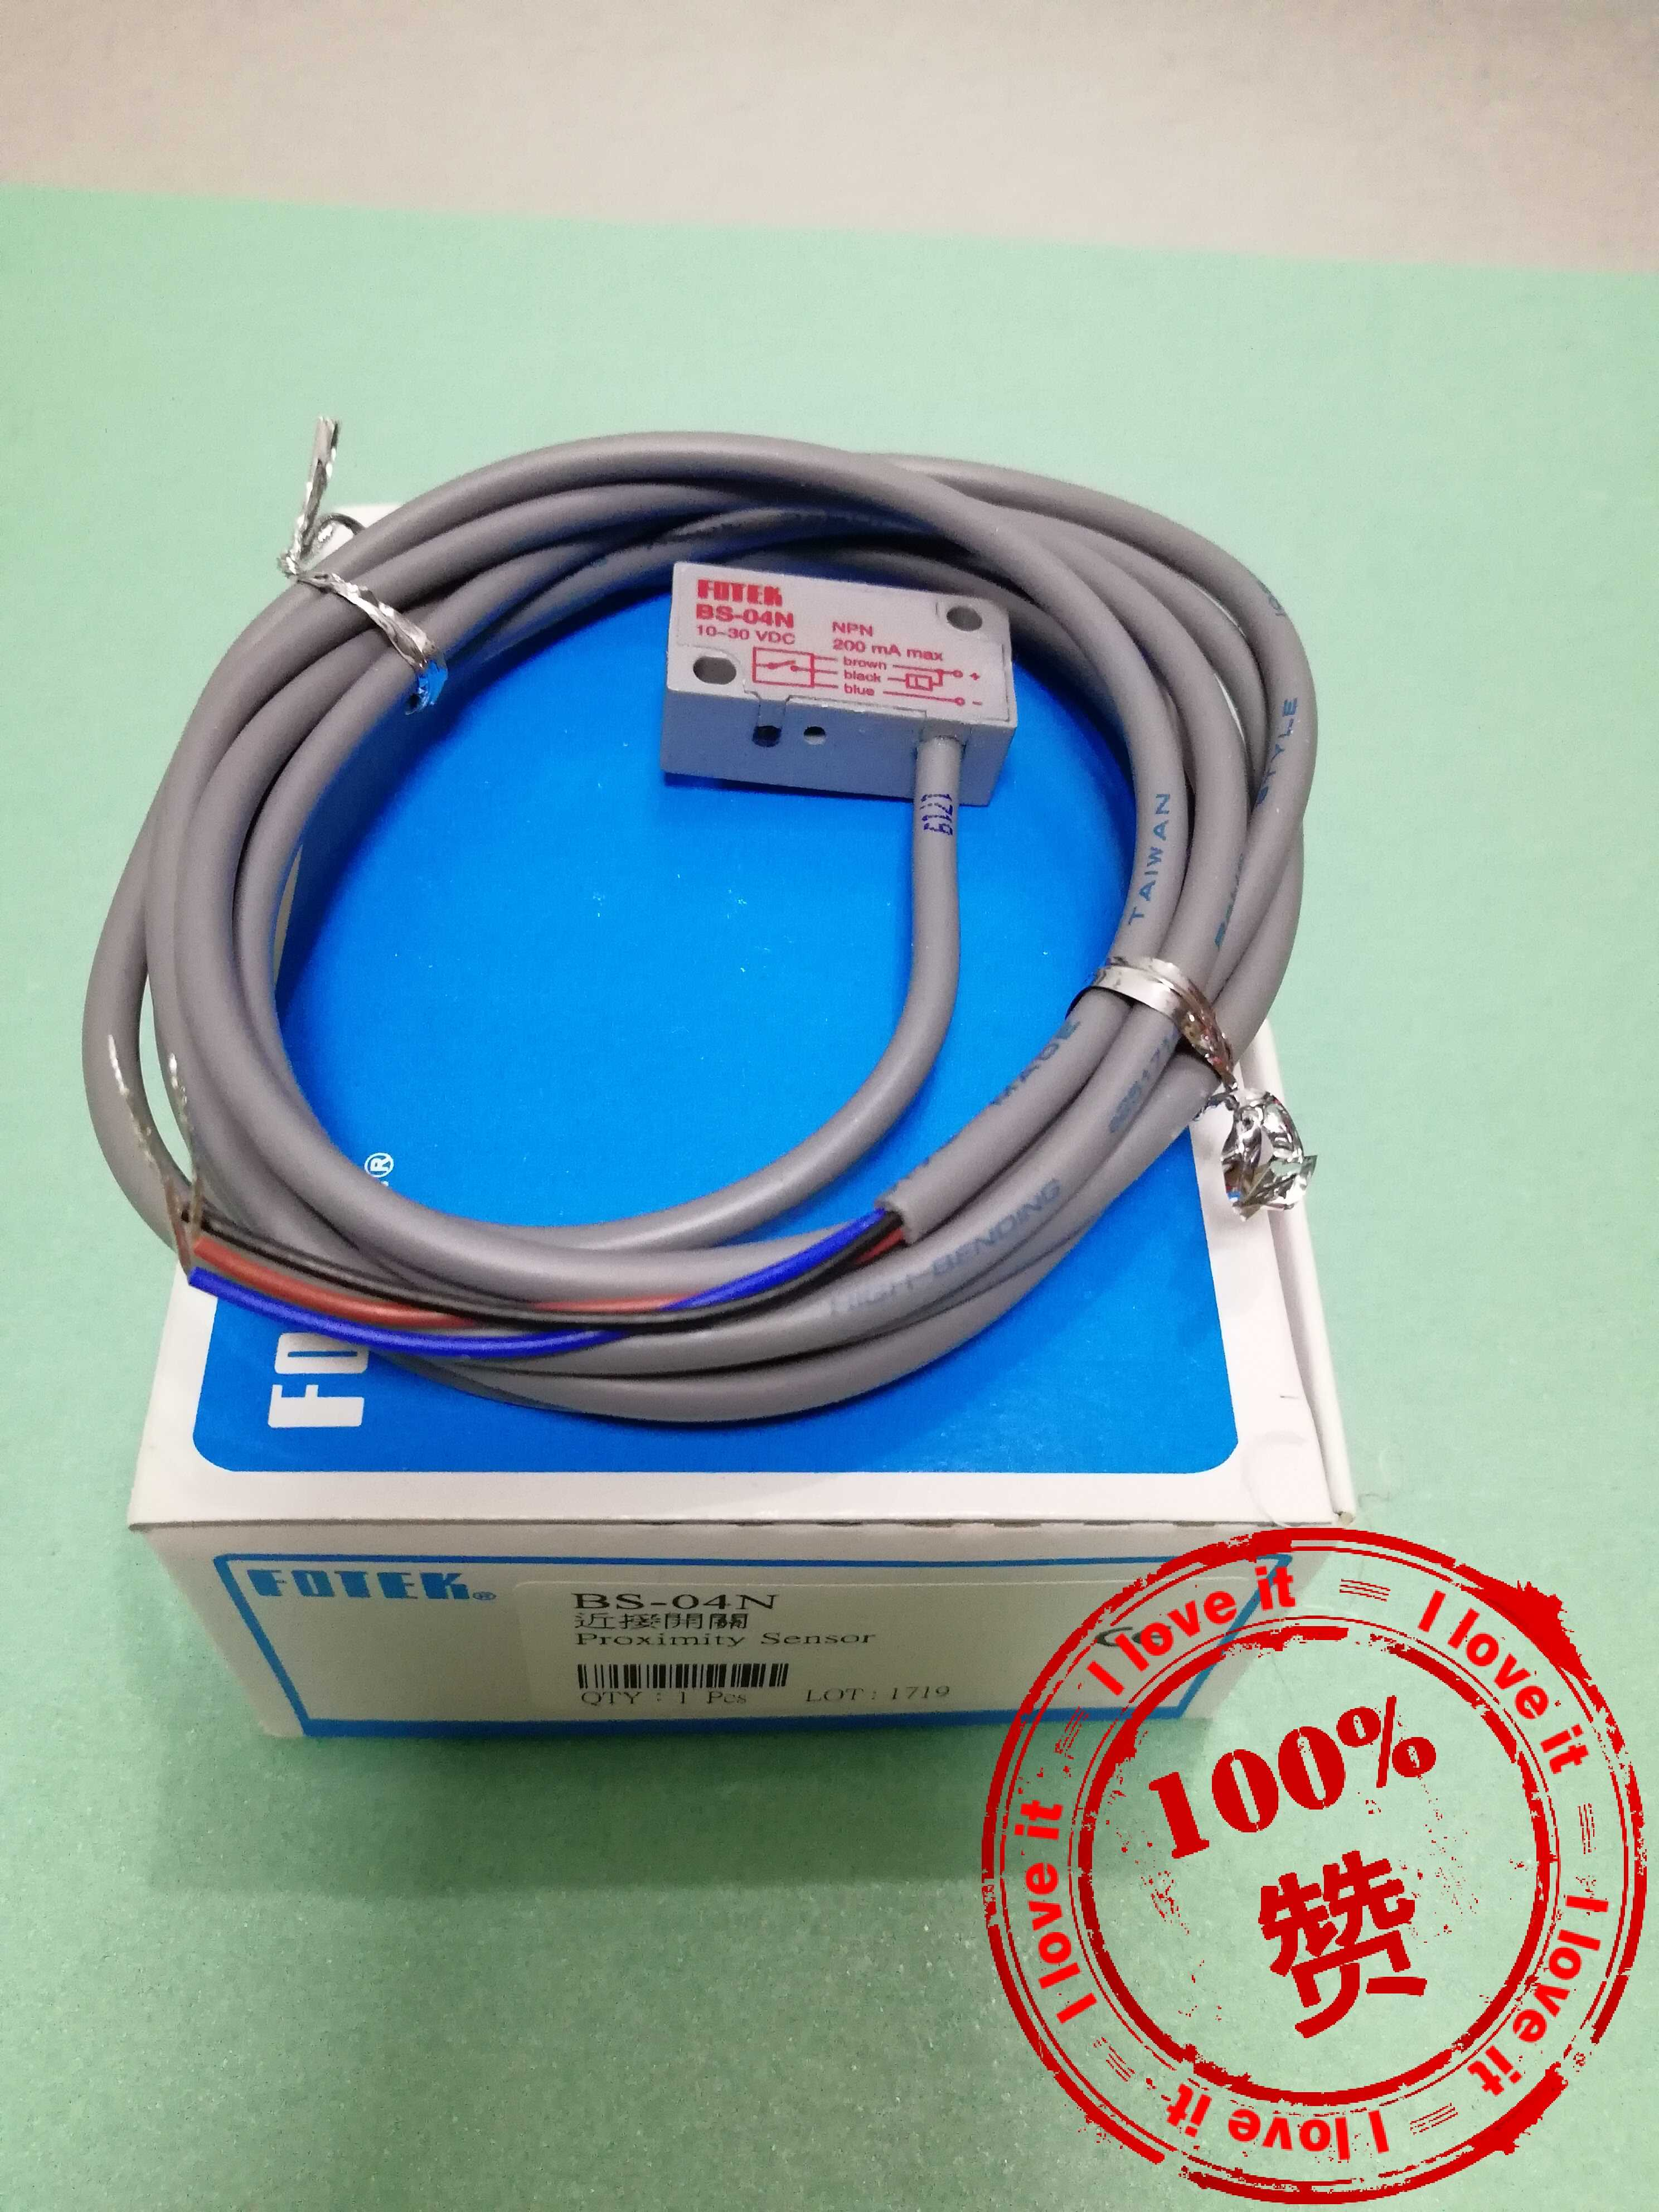 Inductive Proximity Switch BS-04N Original Electromechanical Fake Penalty 10